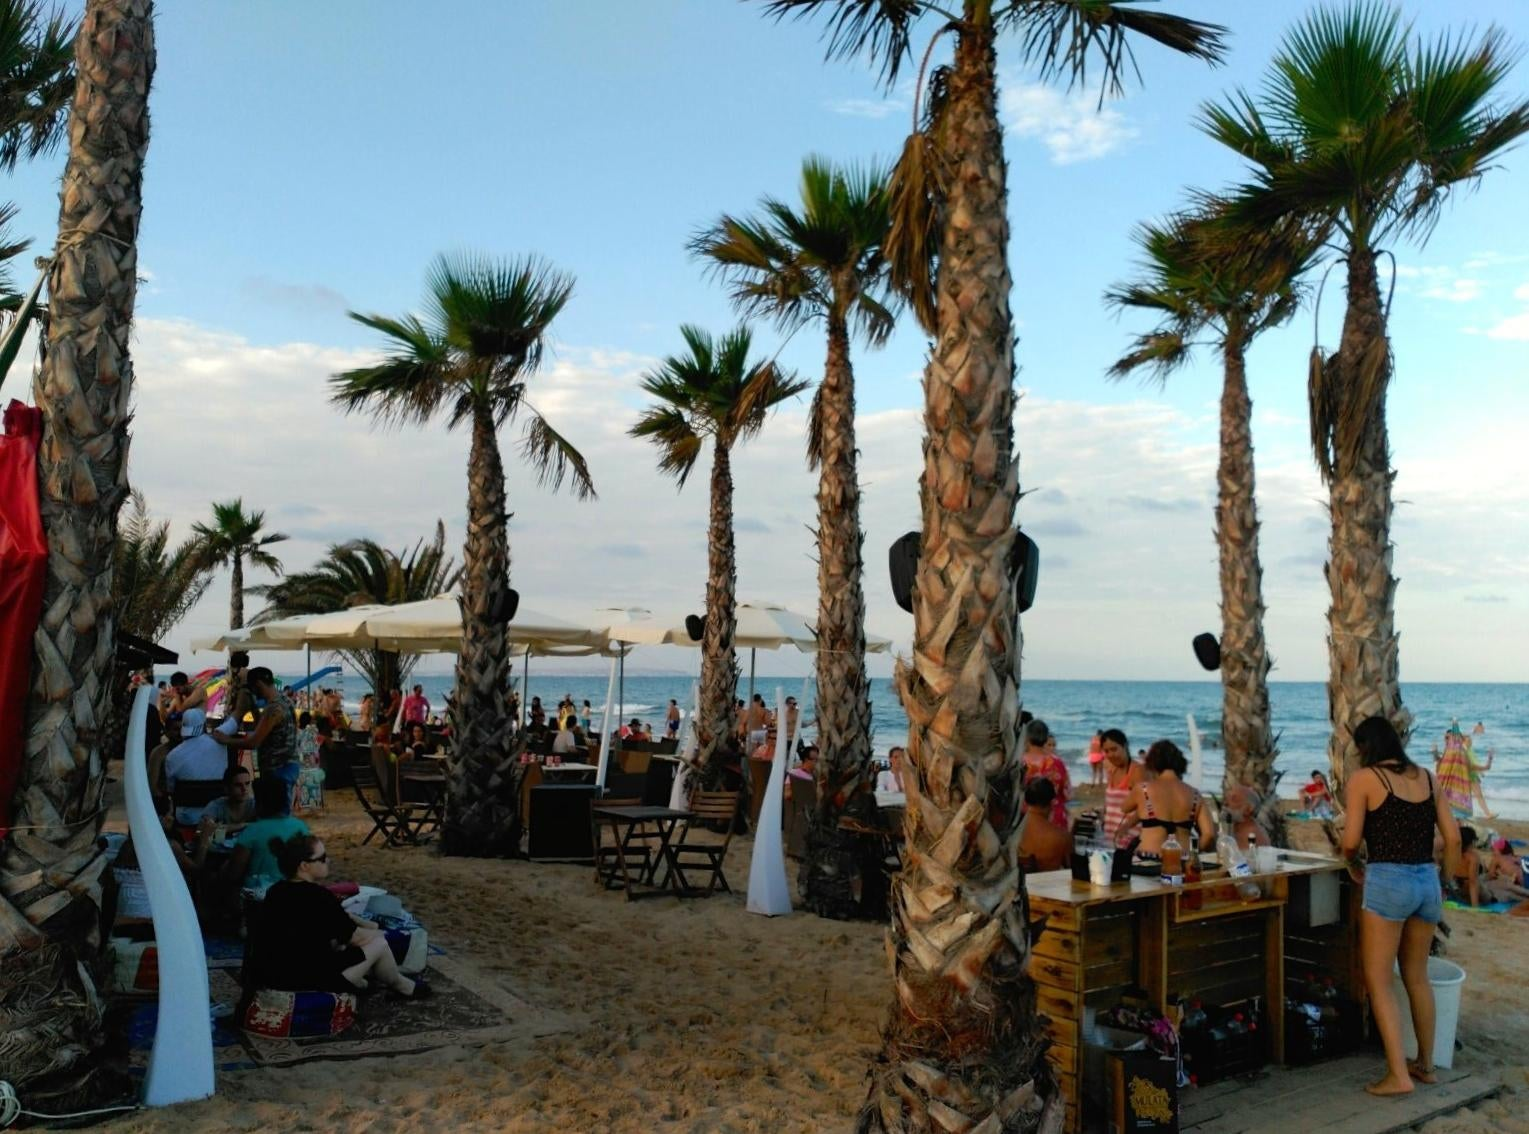 Fotos de chill out playa guardamar im genes - Fotos chill out ...